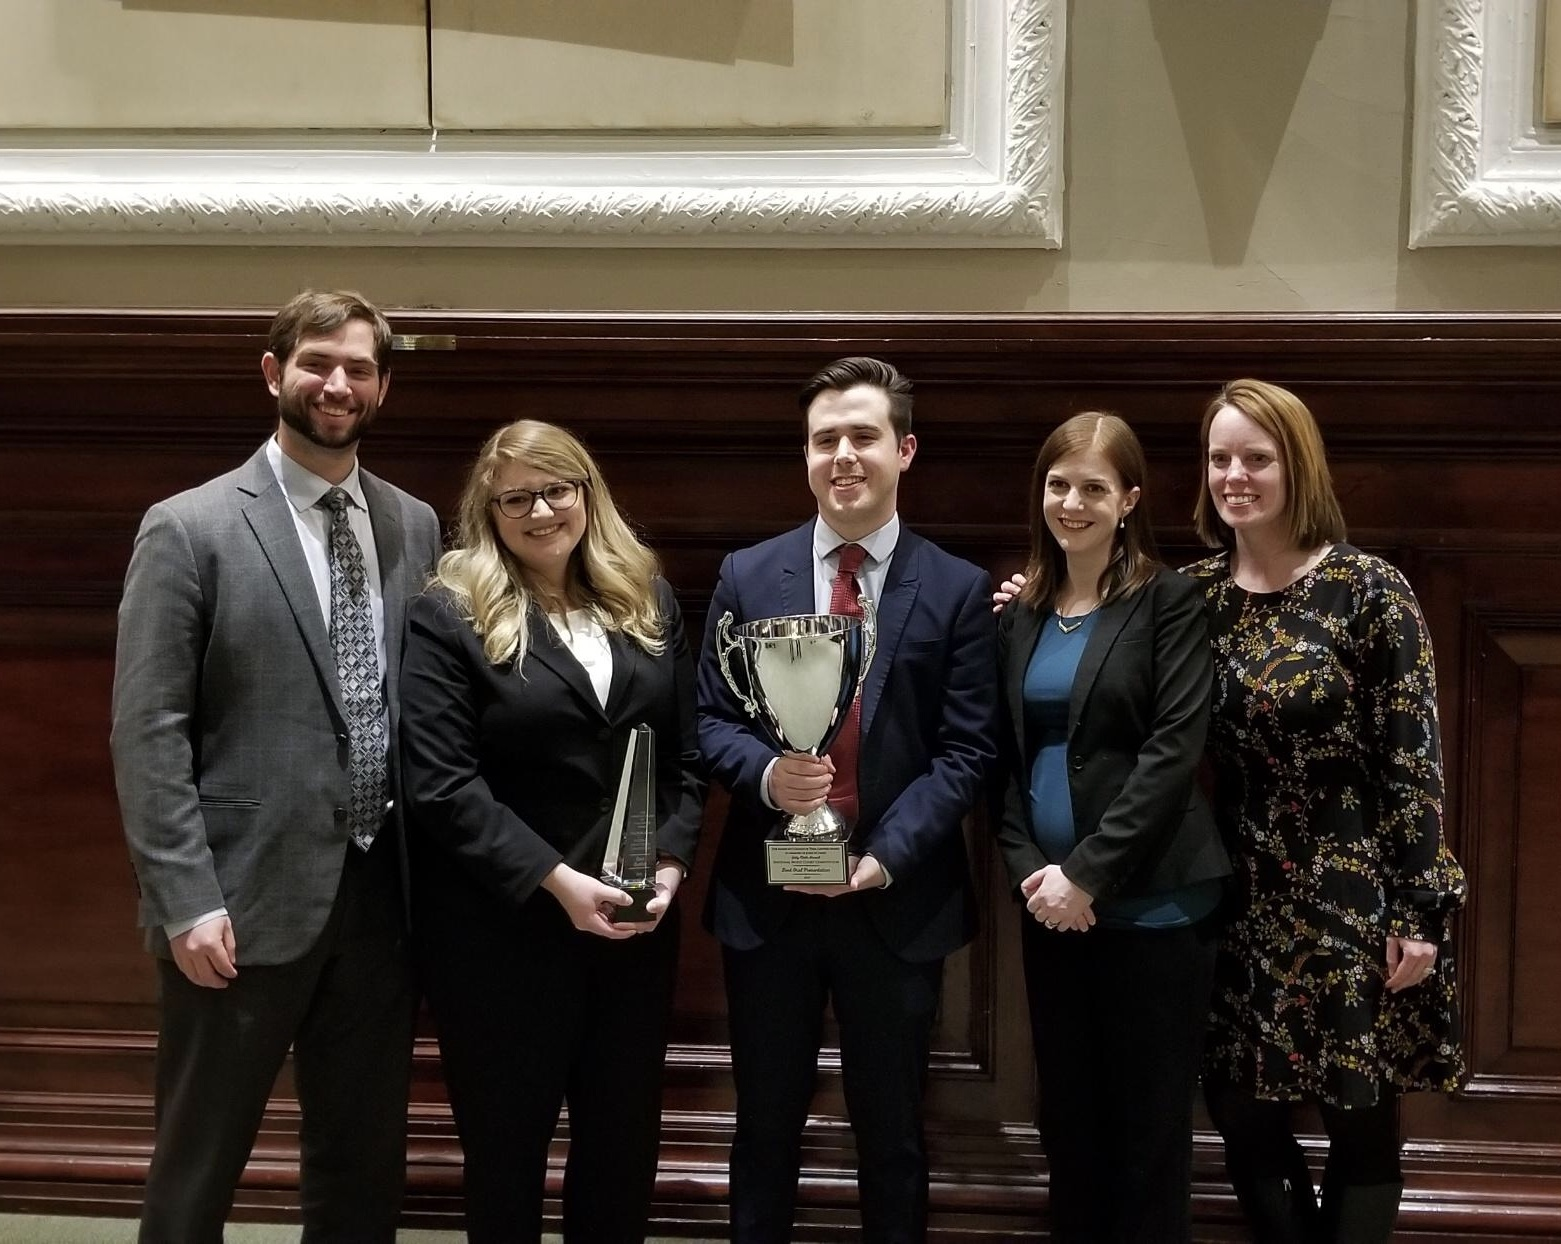 WBRC Fox 6 Features National Moot Court Champions